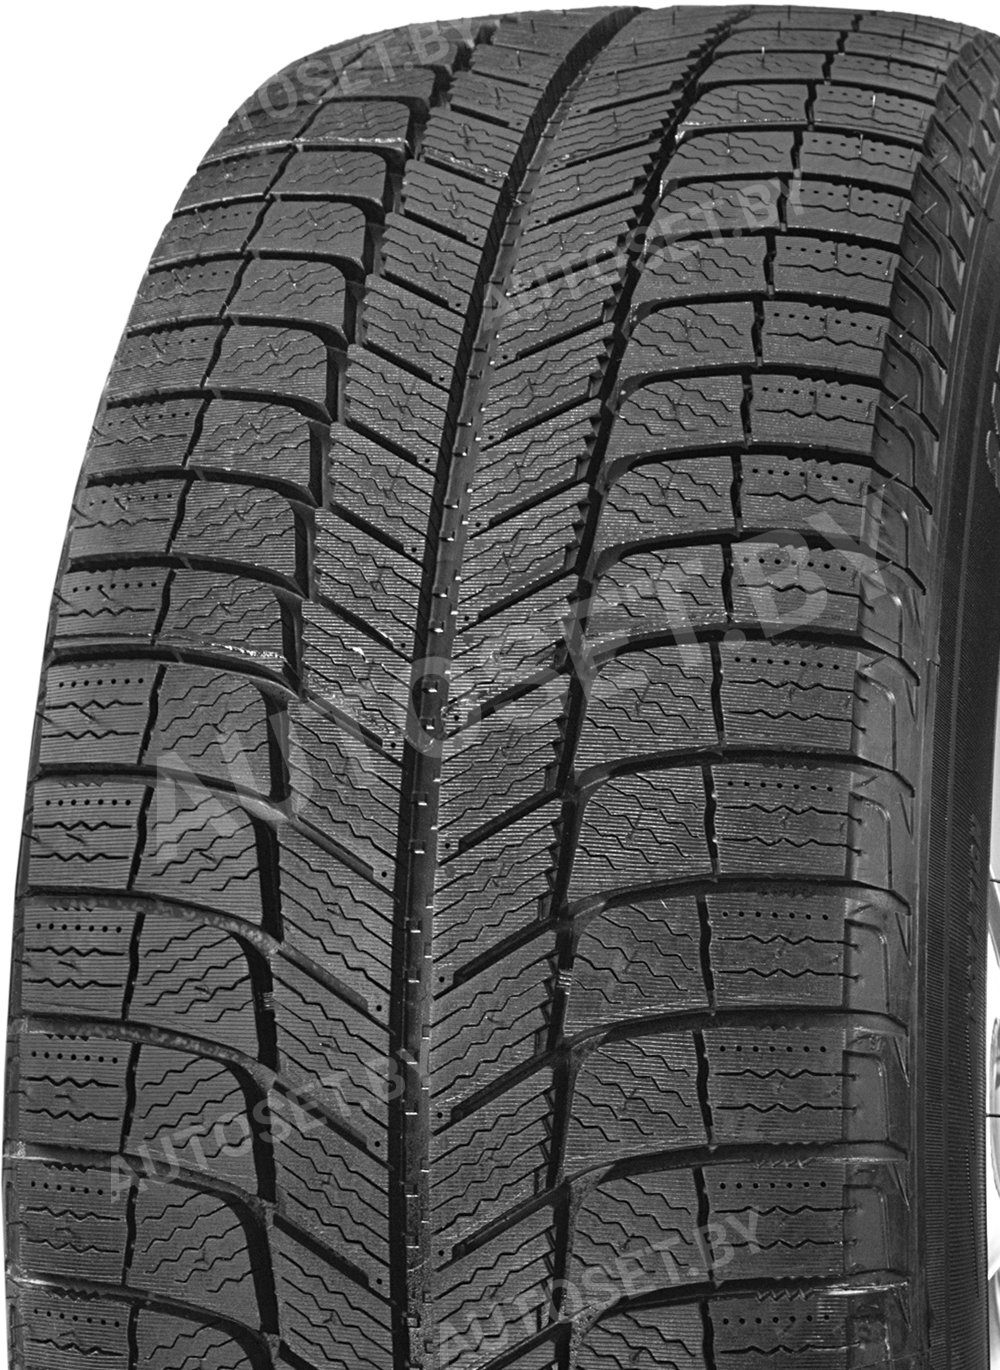 Зимняя шина MICHELIN X-Ice 3 – вид 1